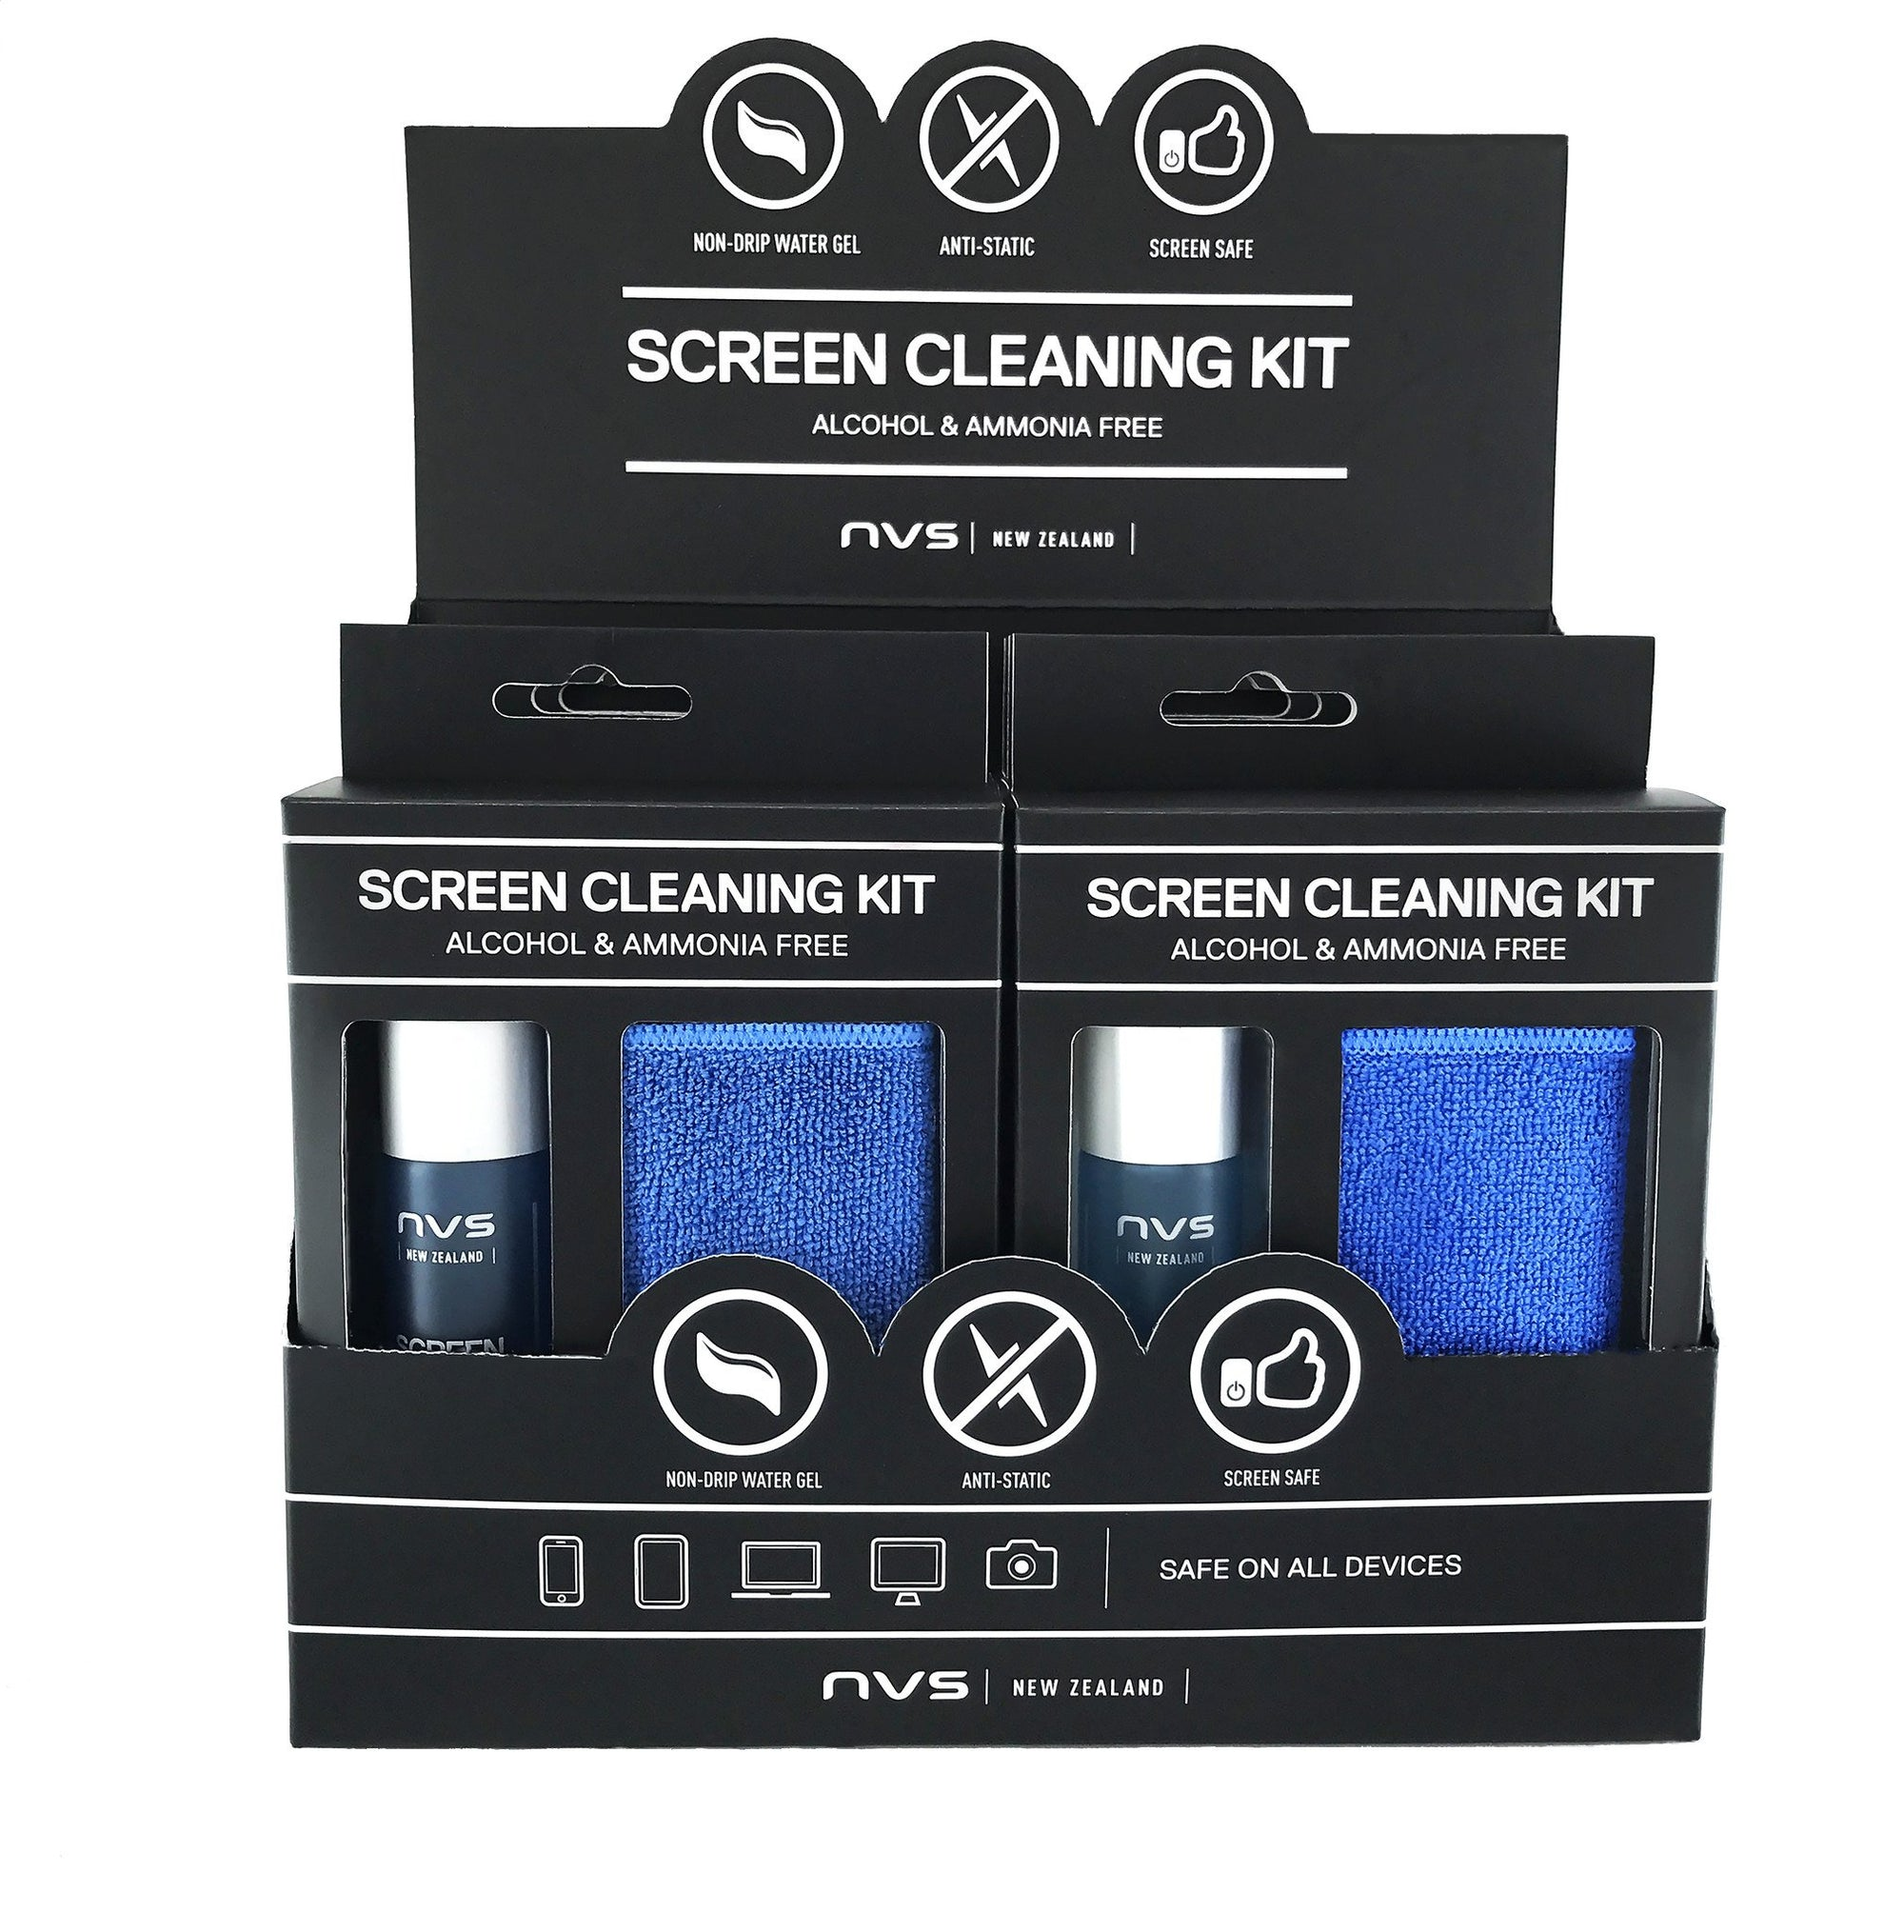 NVS Screen Cleaning Kit (30 ml) 6-Pack Counter Display